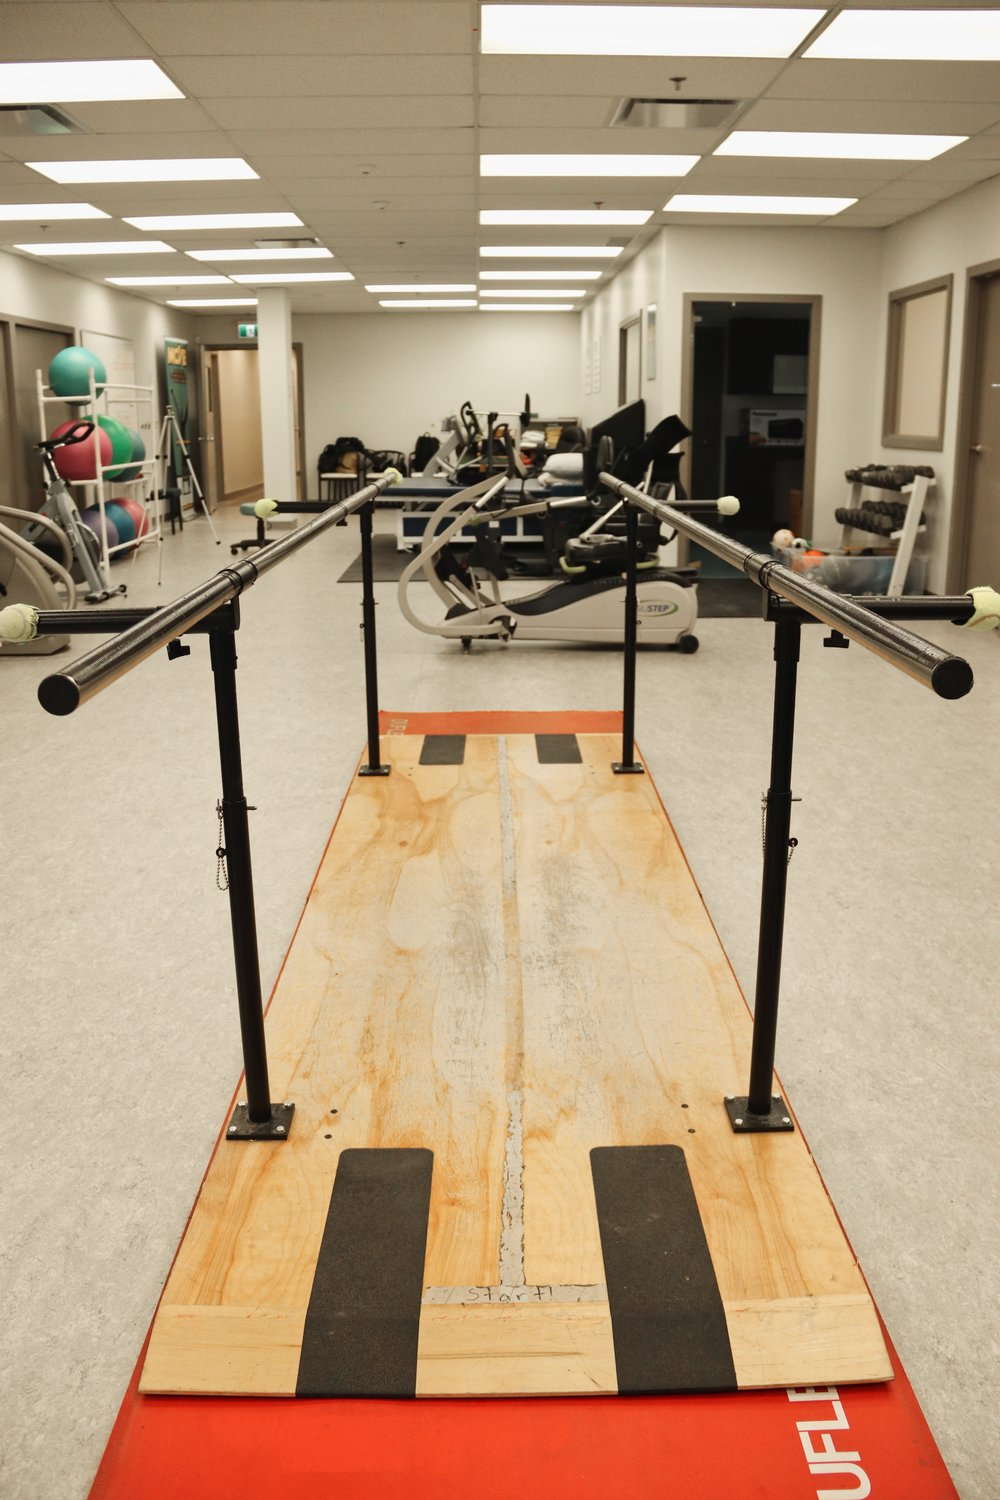 parallel bars - The Parallel bars assist individuals with gait training, as well as to regain balance, strength, range of motion, and mobility.